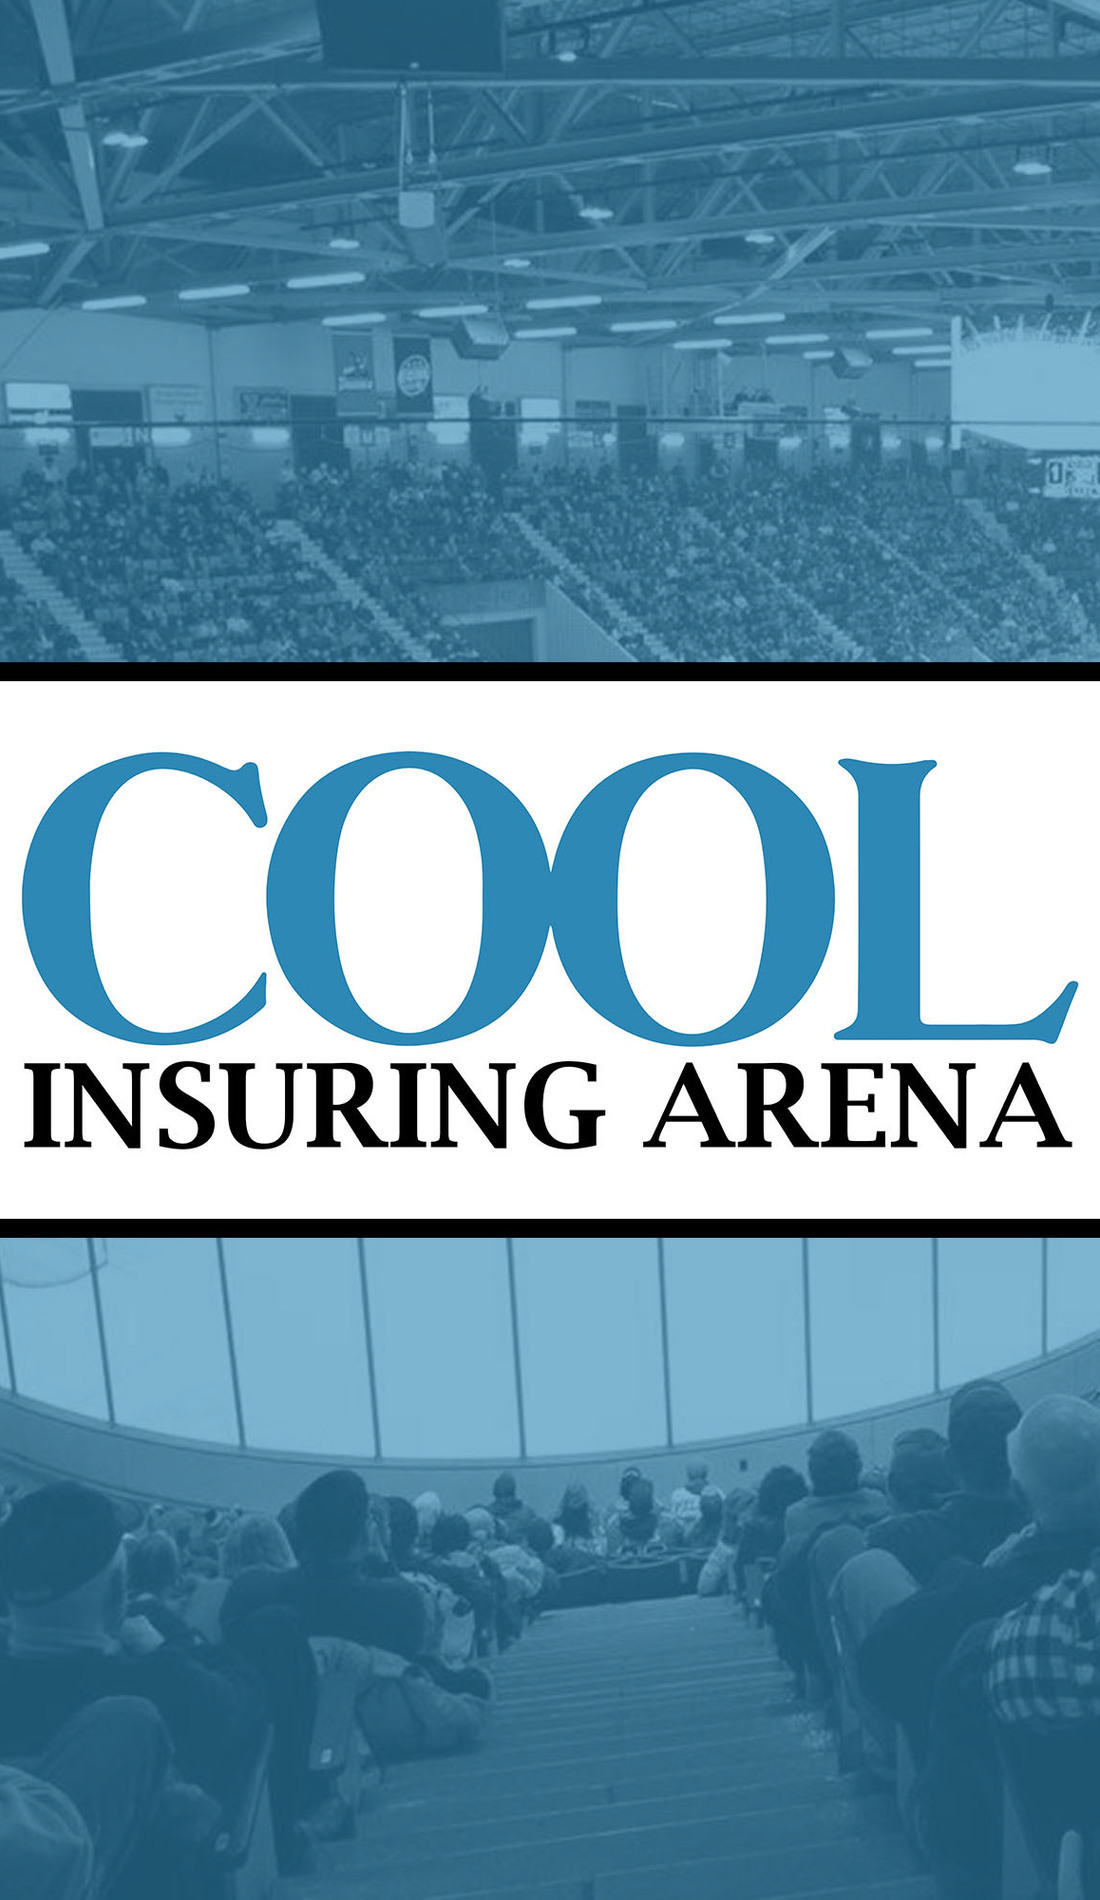 A Cool Insuring Arena live event